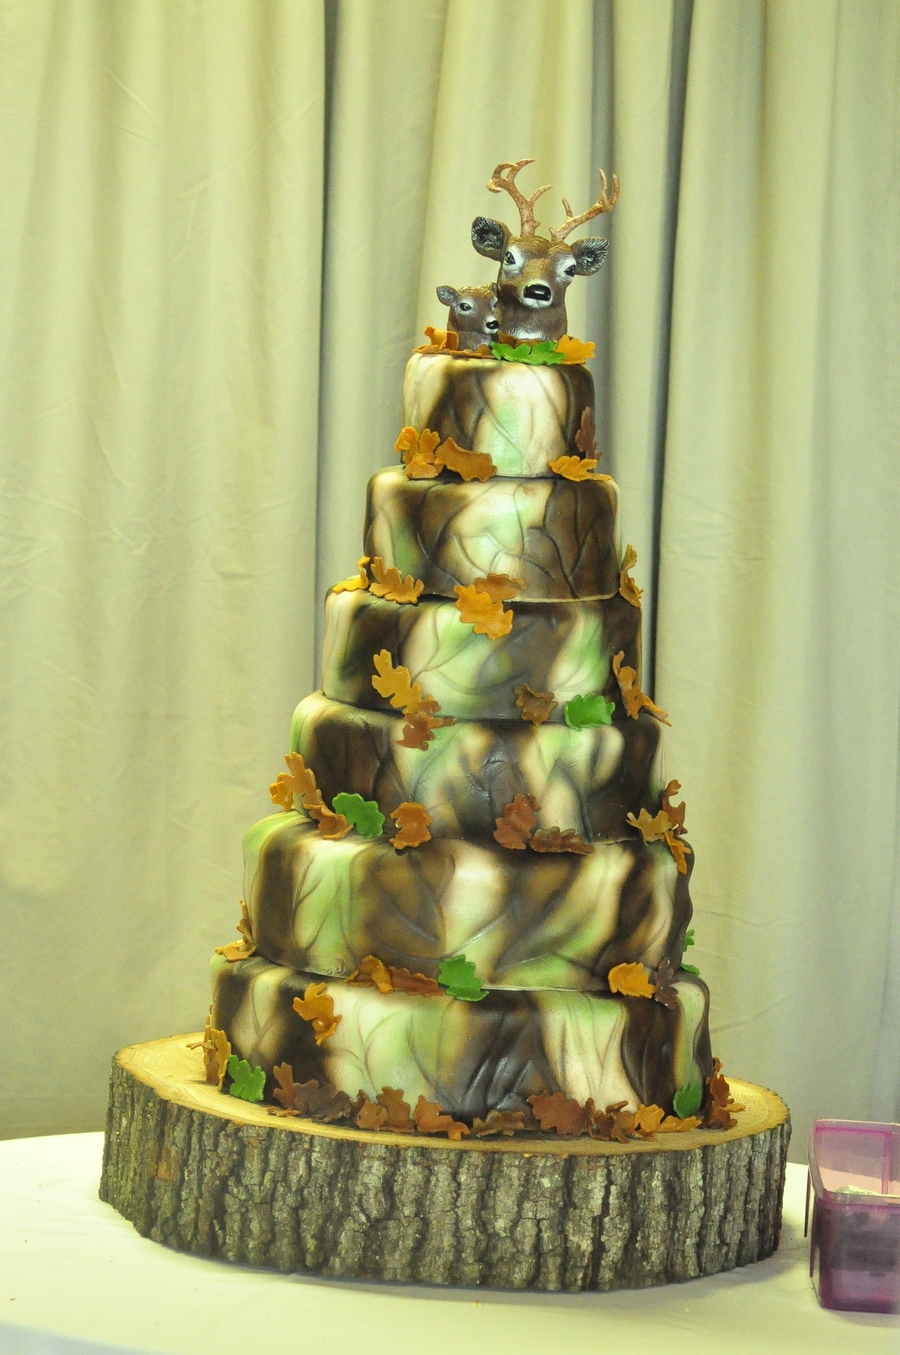 Camo Wedding Cakes. Camo Wedding Cake With His And Hers Side And ...